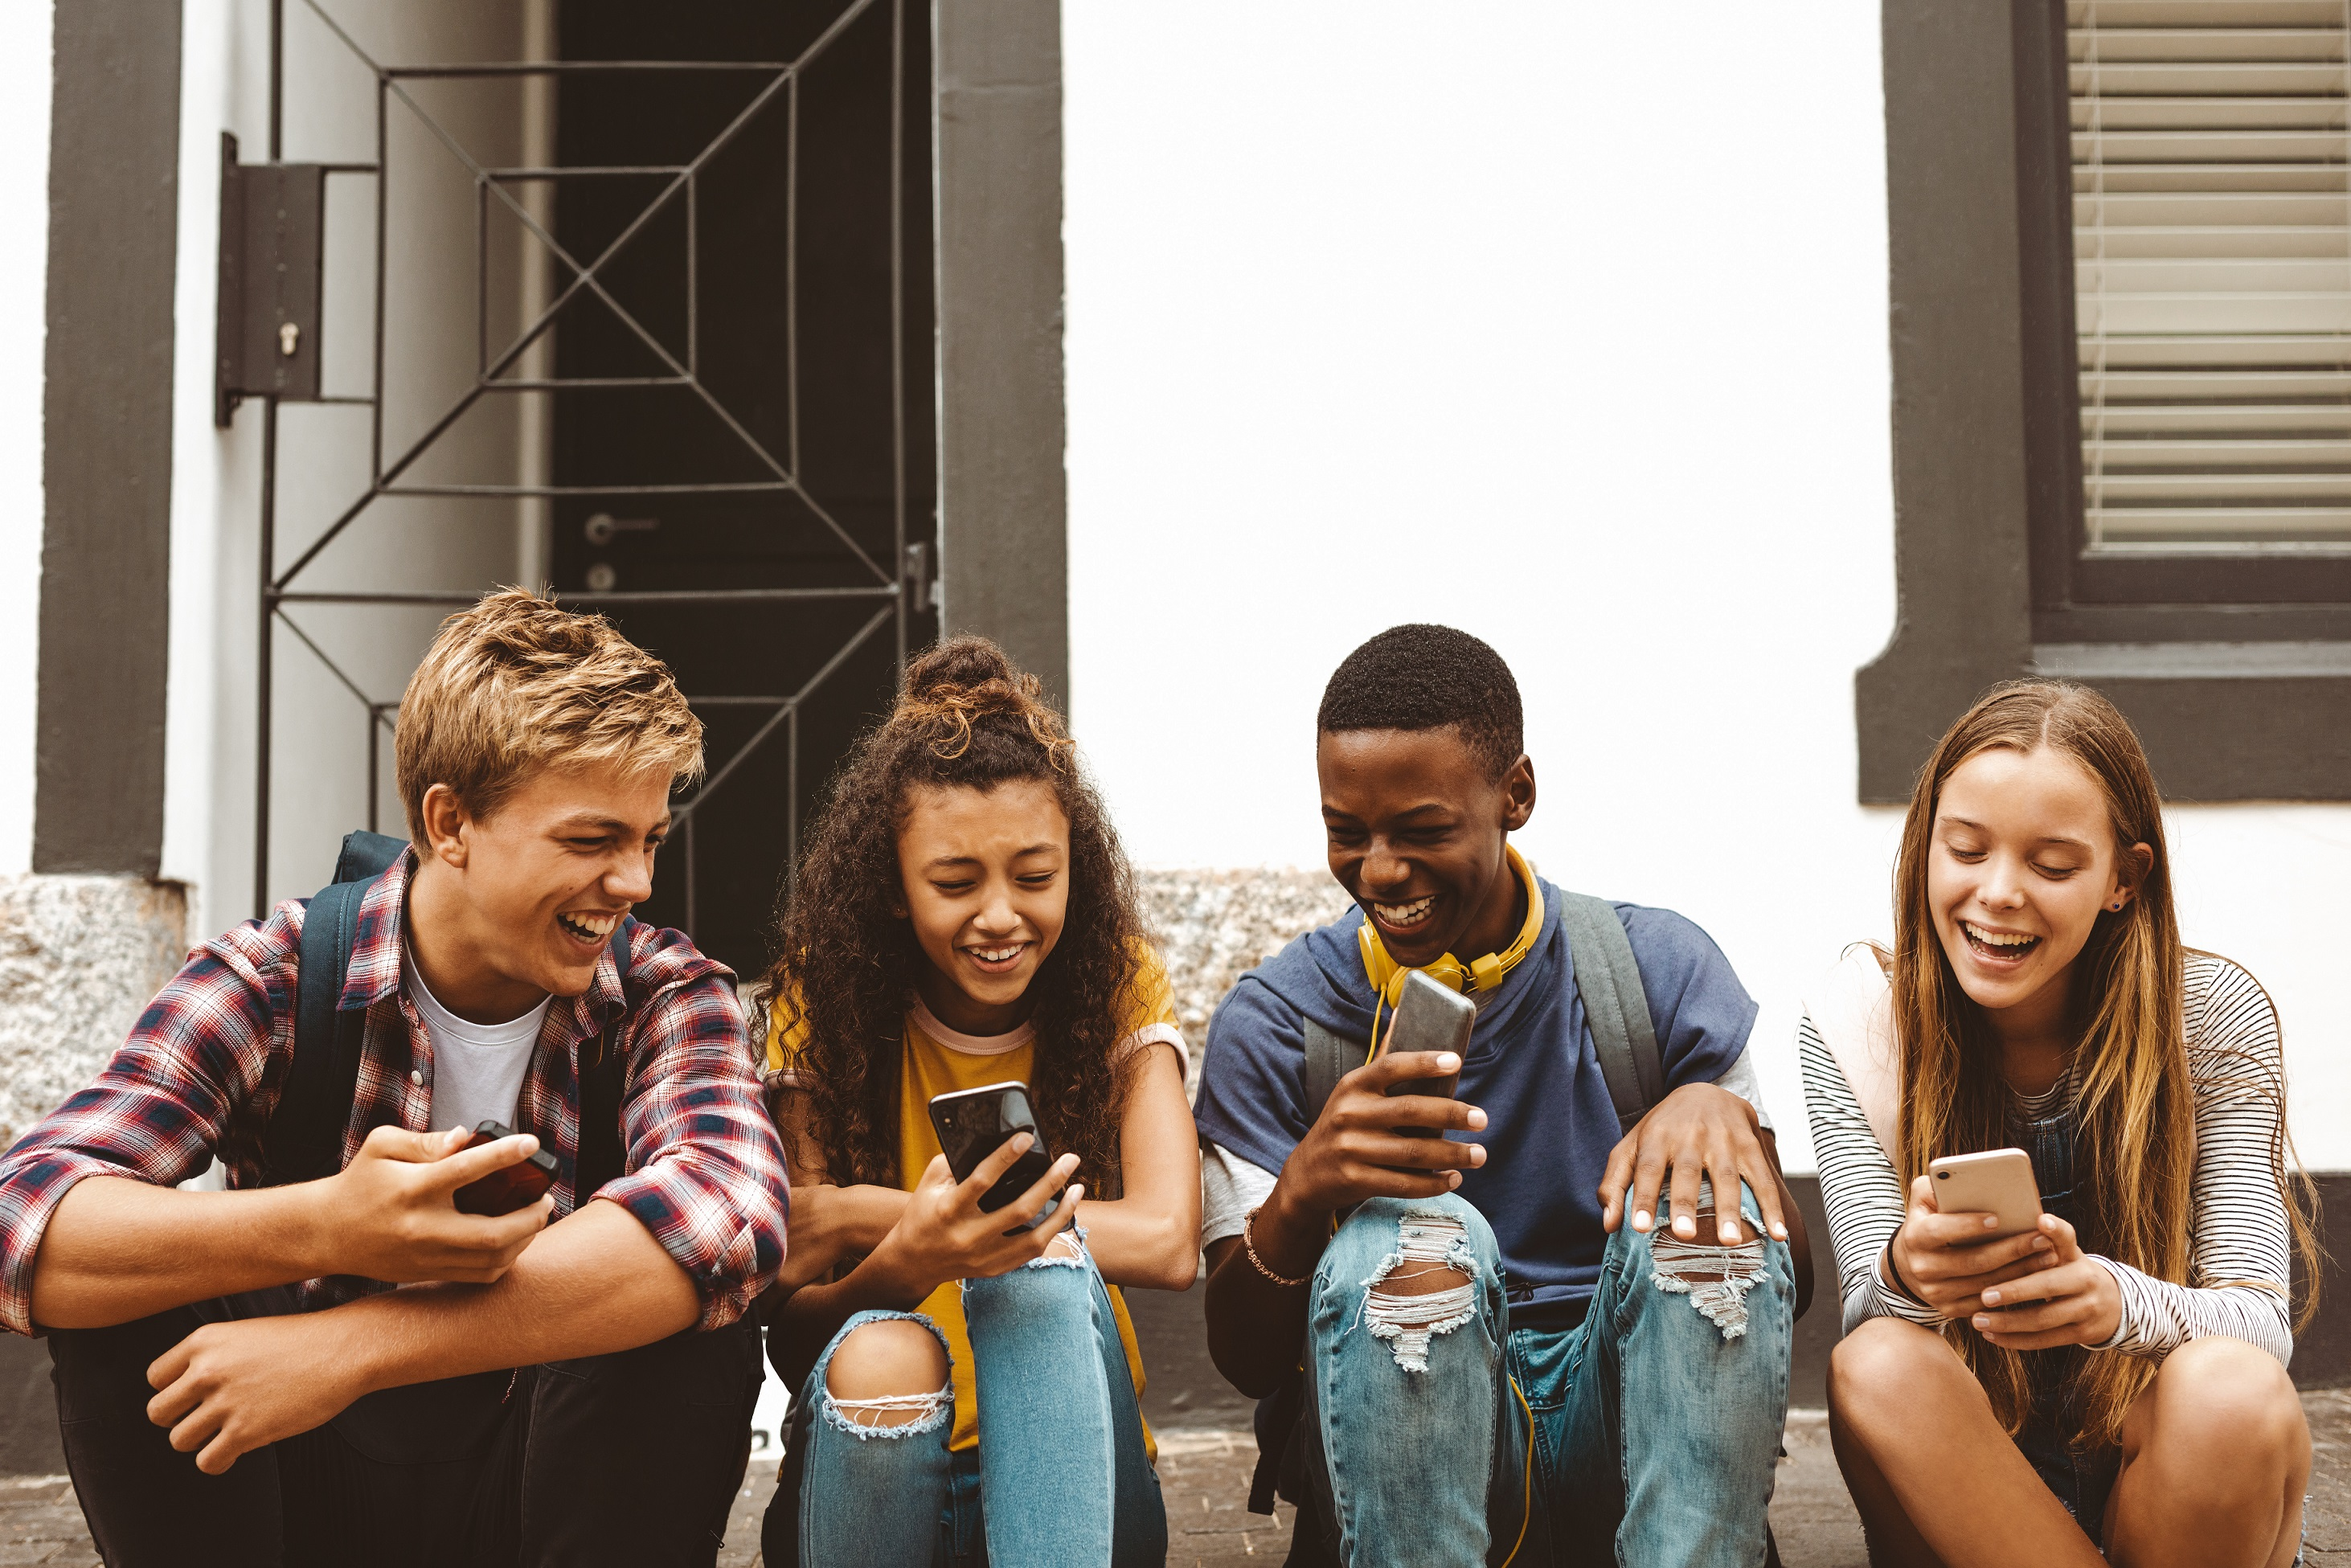 generation Z with high rates of hepatitis C